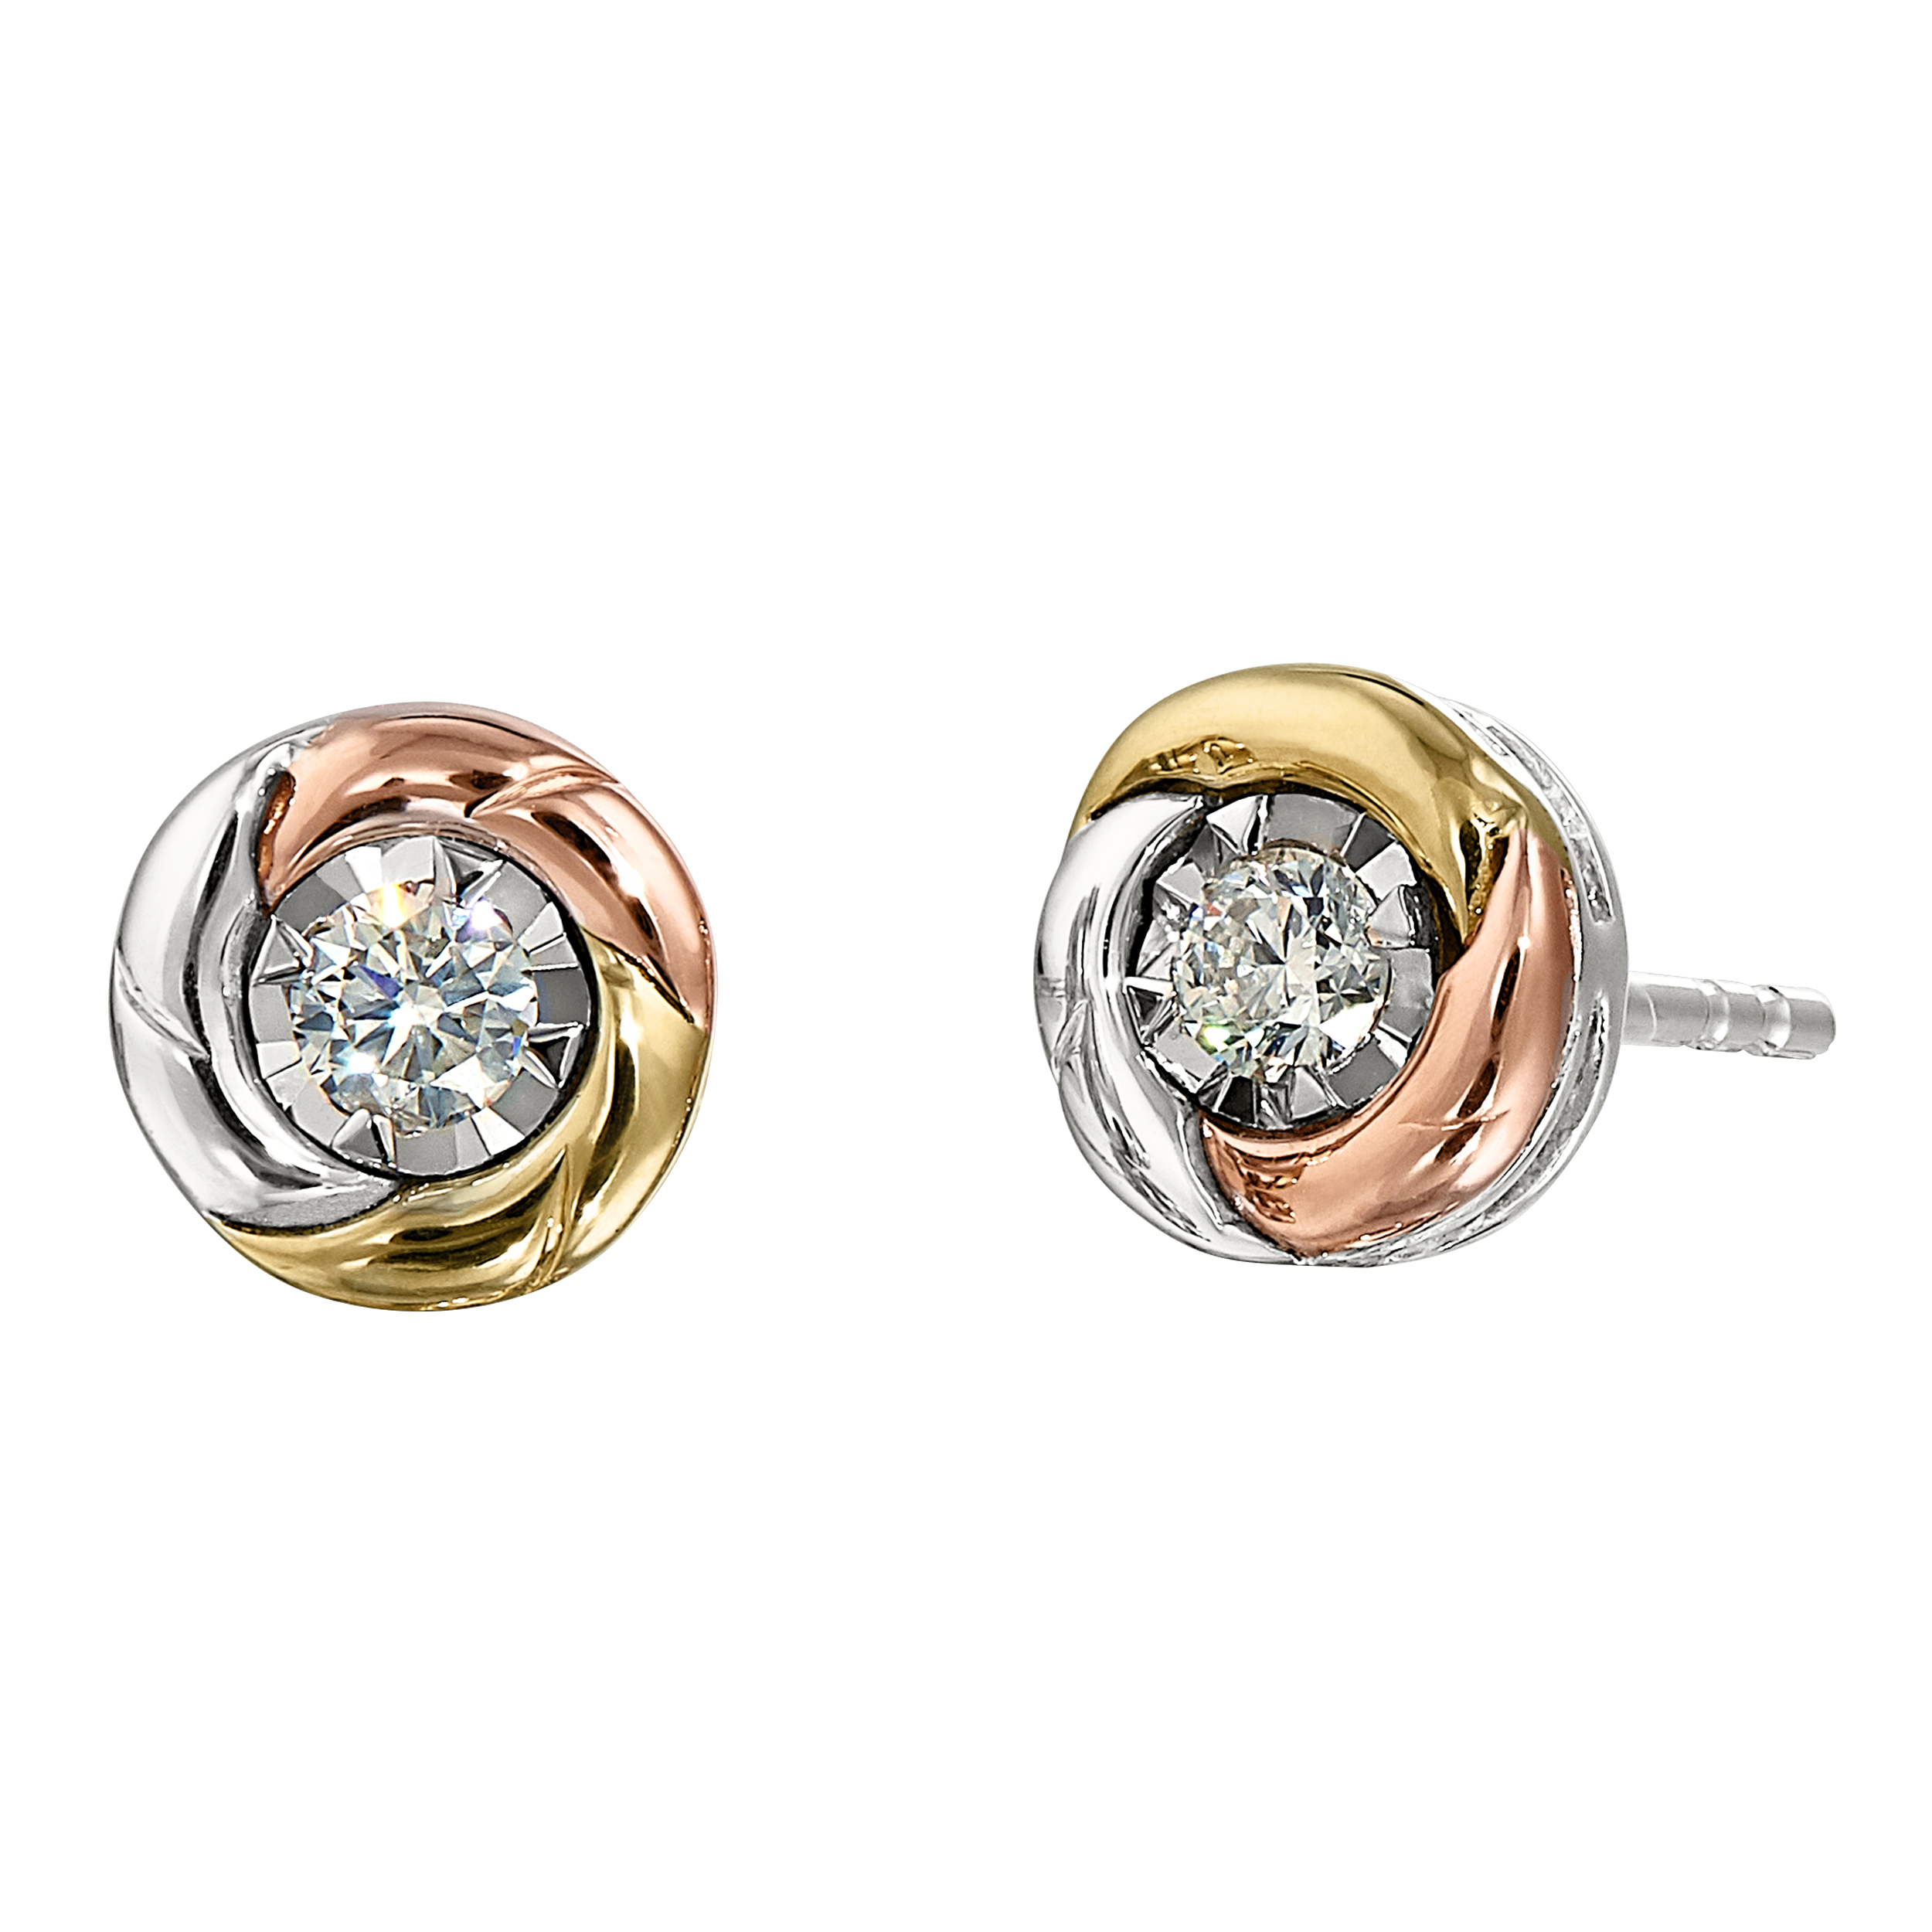 Tricolor Diamond Earrings